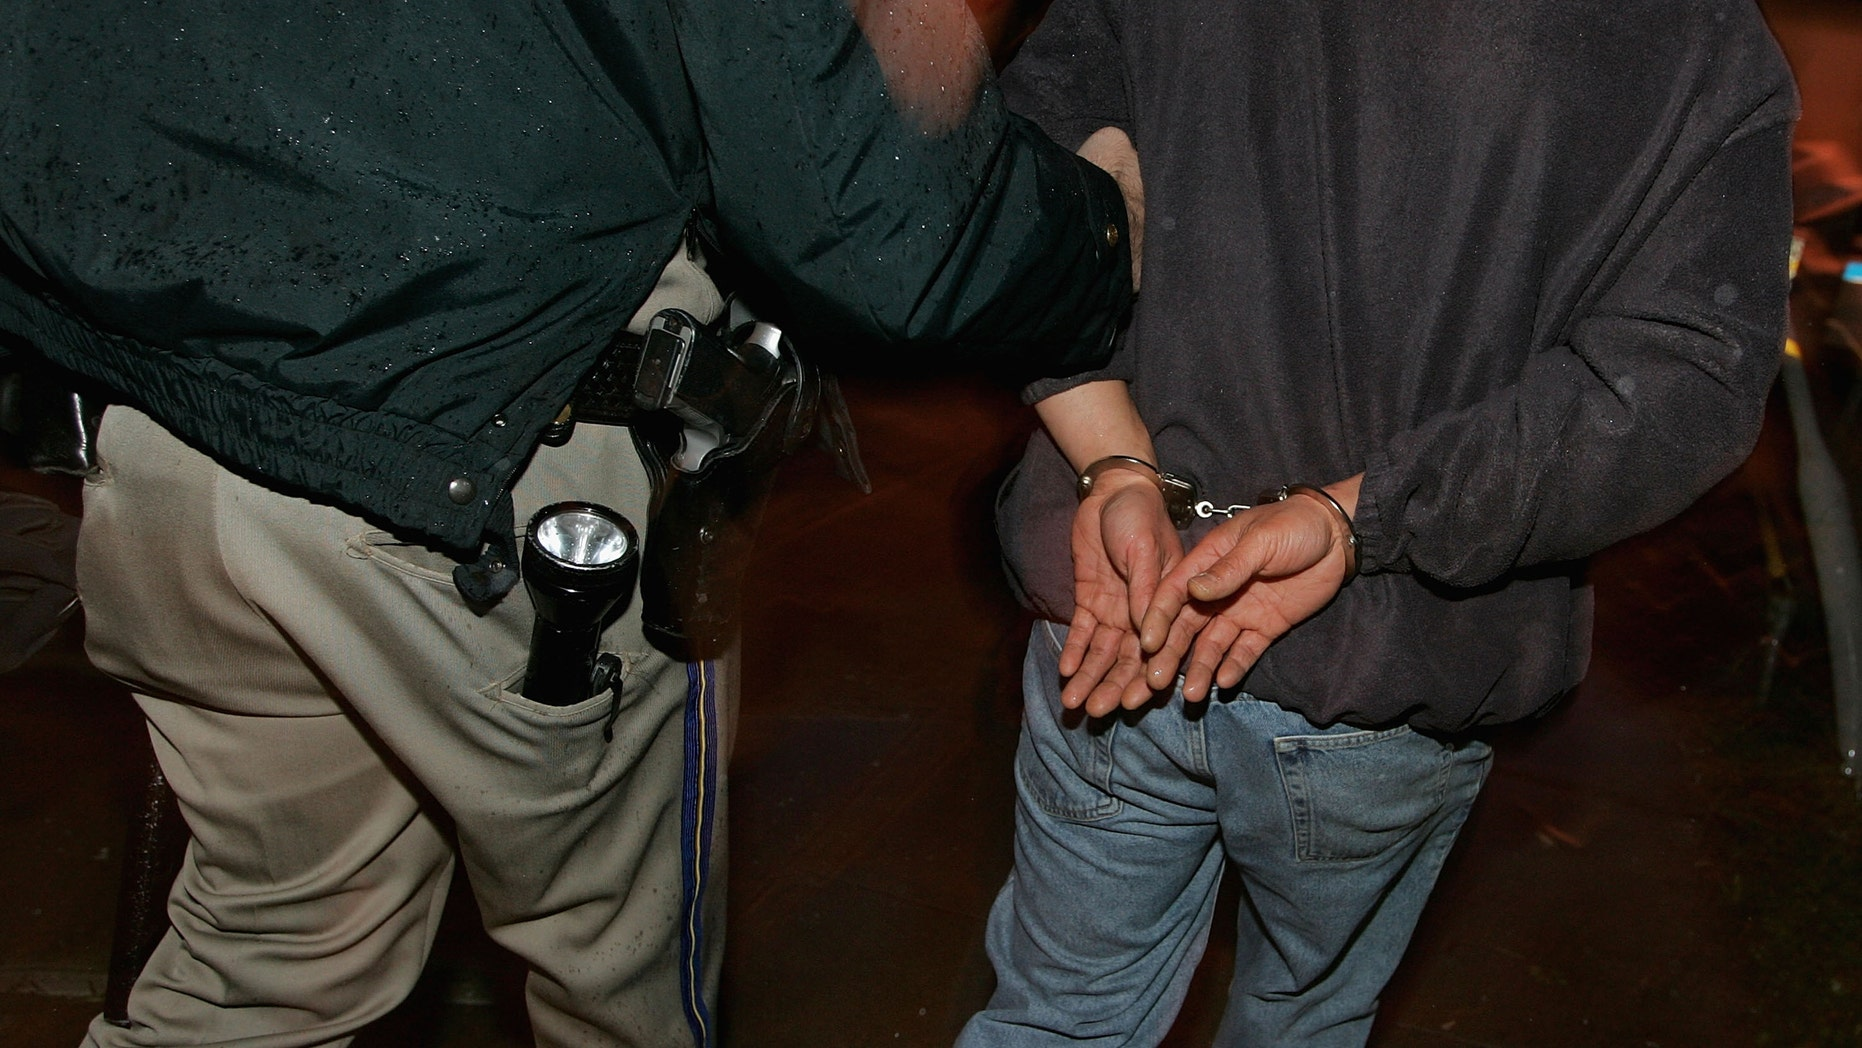 SAN FRANCISCO - DECEMBER 26: A man is taken away in handcuffs after failing a sobriety test at a sobriety checkpoint December 26, 2004 in San Francisco, California. The California Highway Patrol reported a total of 1,481  driving under the influence arrests since the December 17 the start of the AVOID regional campaign against drunken driving. AVOID, a regional force of 125 police departments in the San Francisco Bay Area, runs its annual ANTI-DUI campaign from December 17 through January 2.  (Photo by Justin Sullivan/Getty Images)